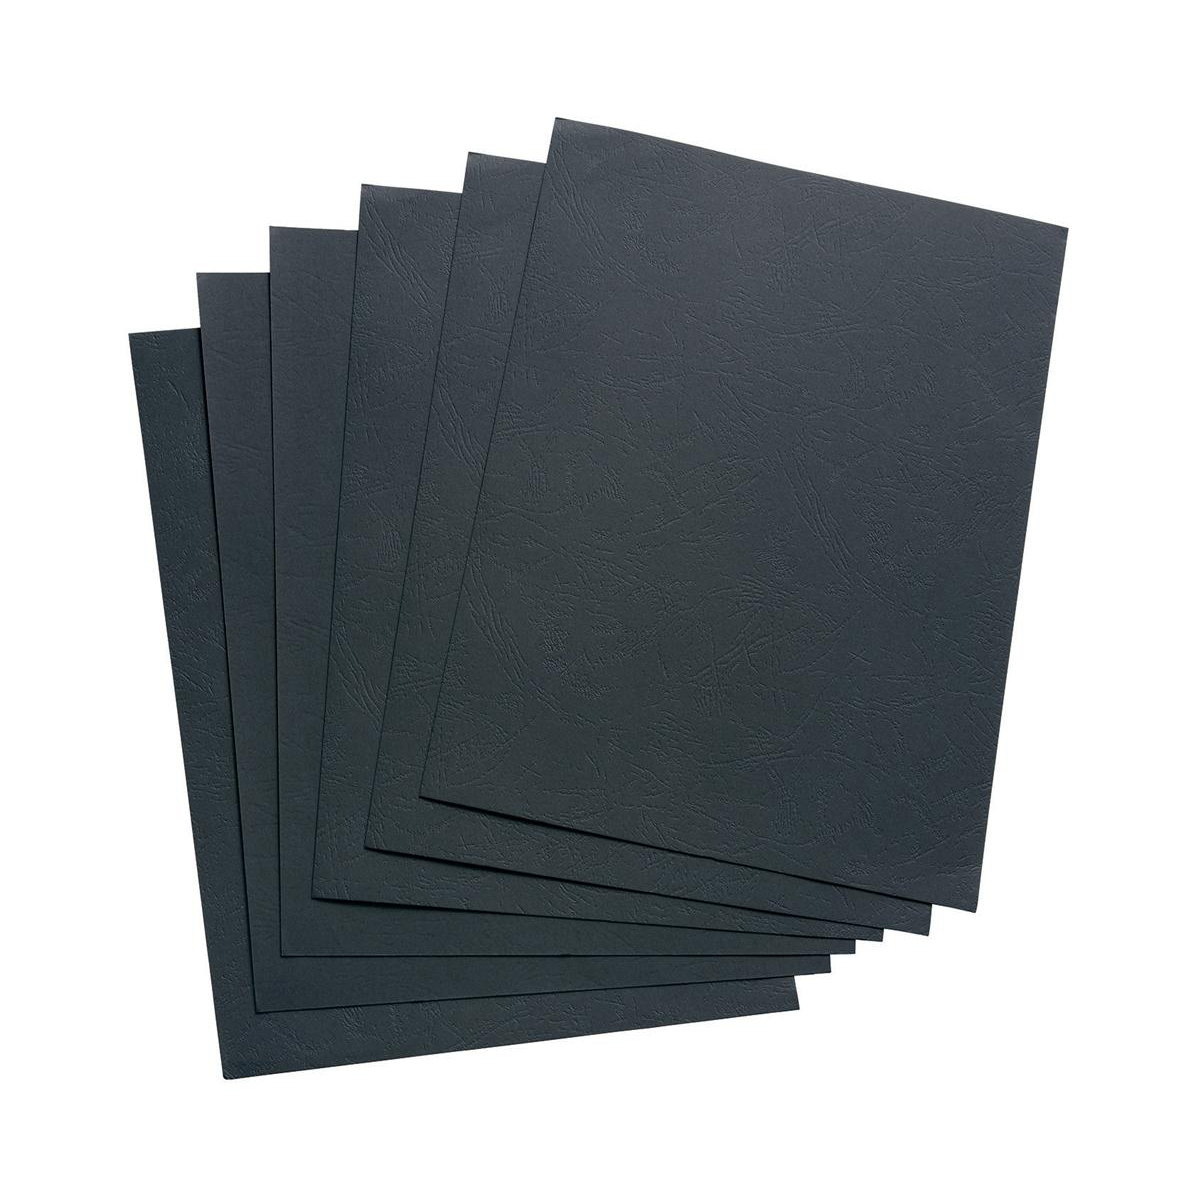 5 Star Office Binding Covers 240gsm Leathergrain A4 Black [Pack 100]